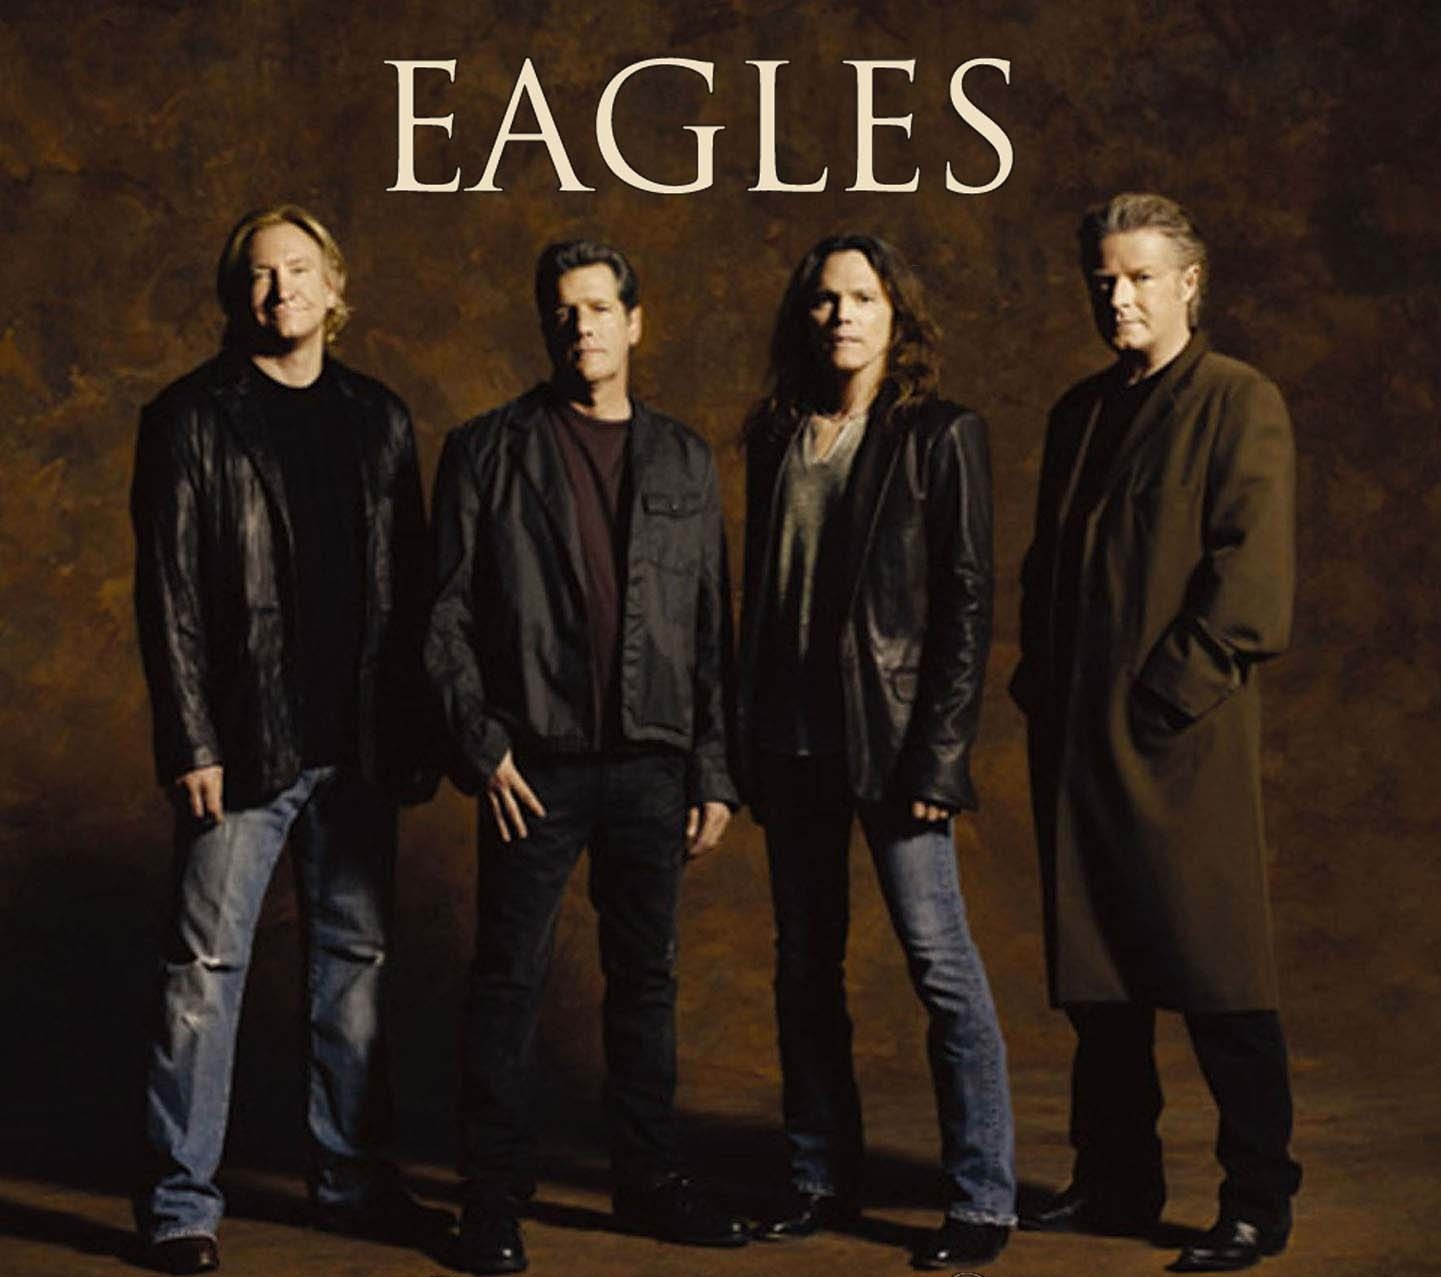 EAGLES extend tour into U.S. spring,summer